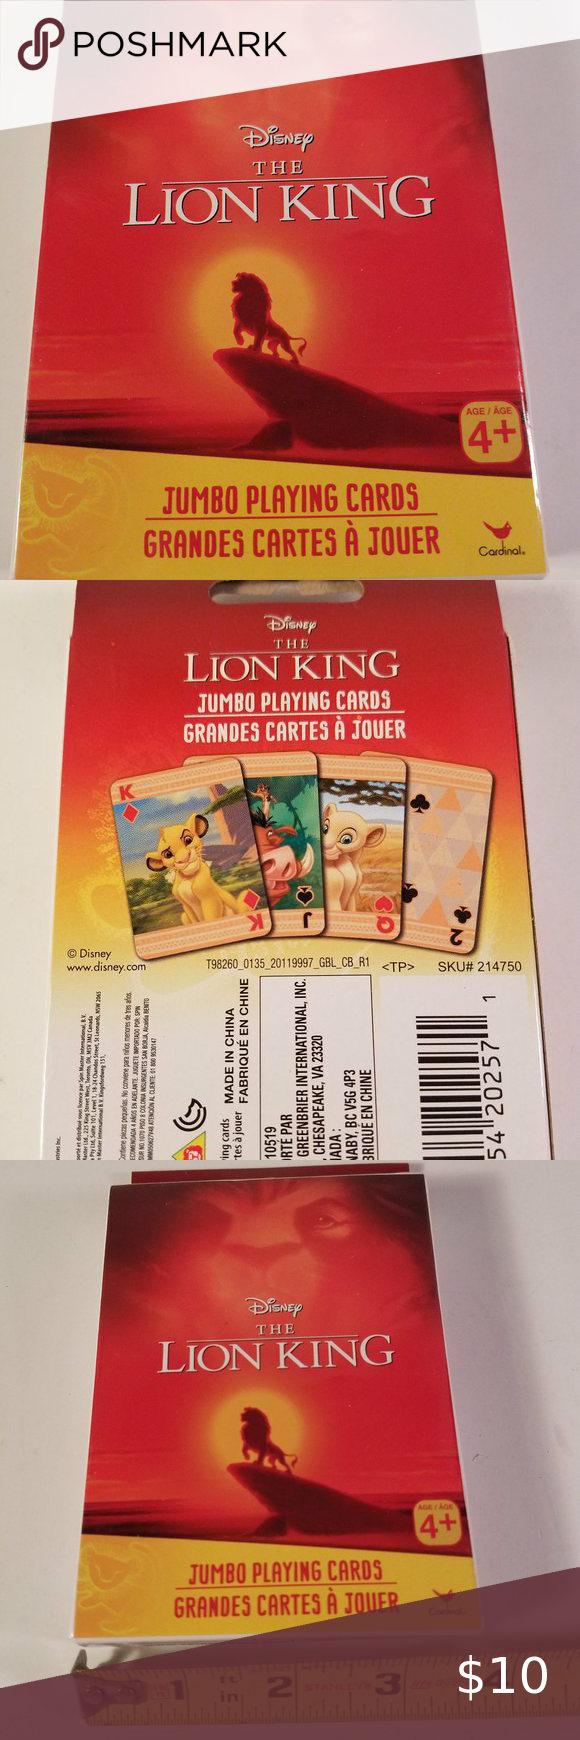 New Disney Lion King Playing Cards